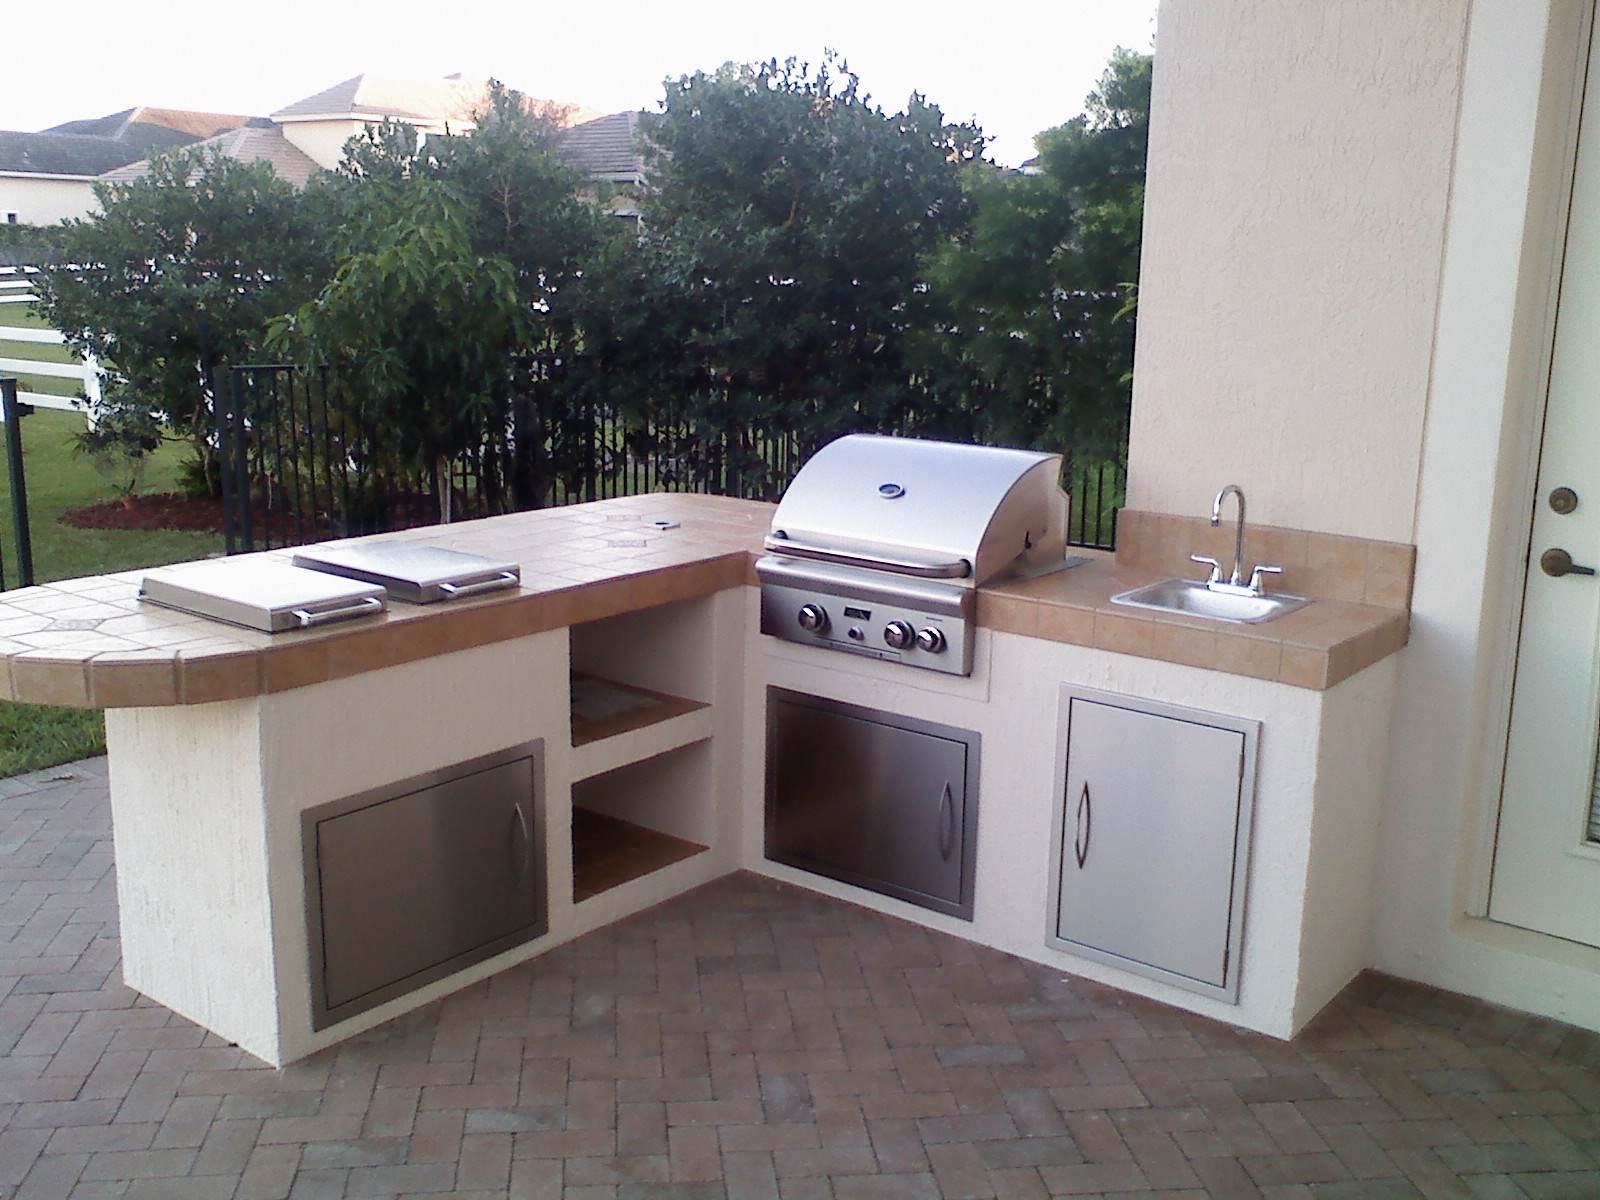 Built in Outdoor Grill Designs | 1600 x 1200 · 403 kB · jpeg | 1600 x 1200 · 403 kB · jpeg